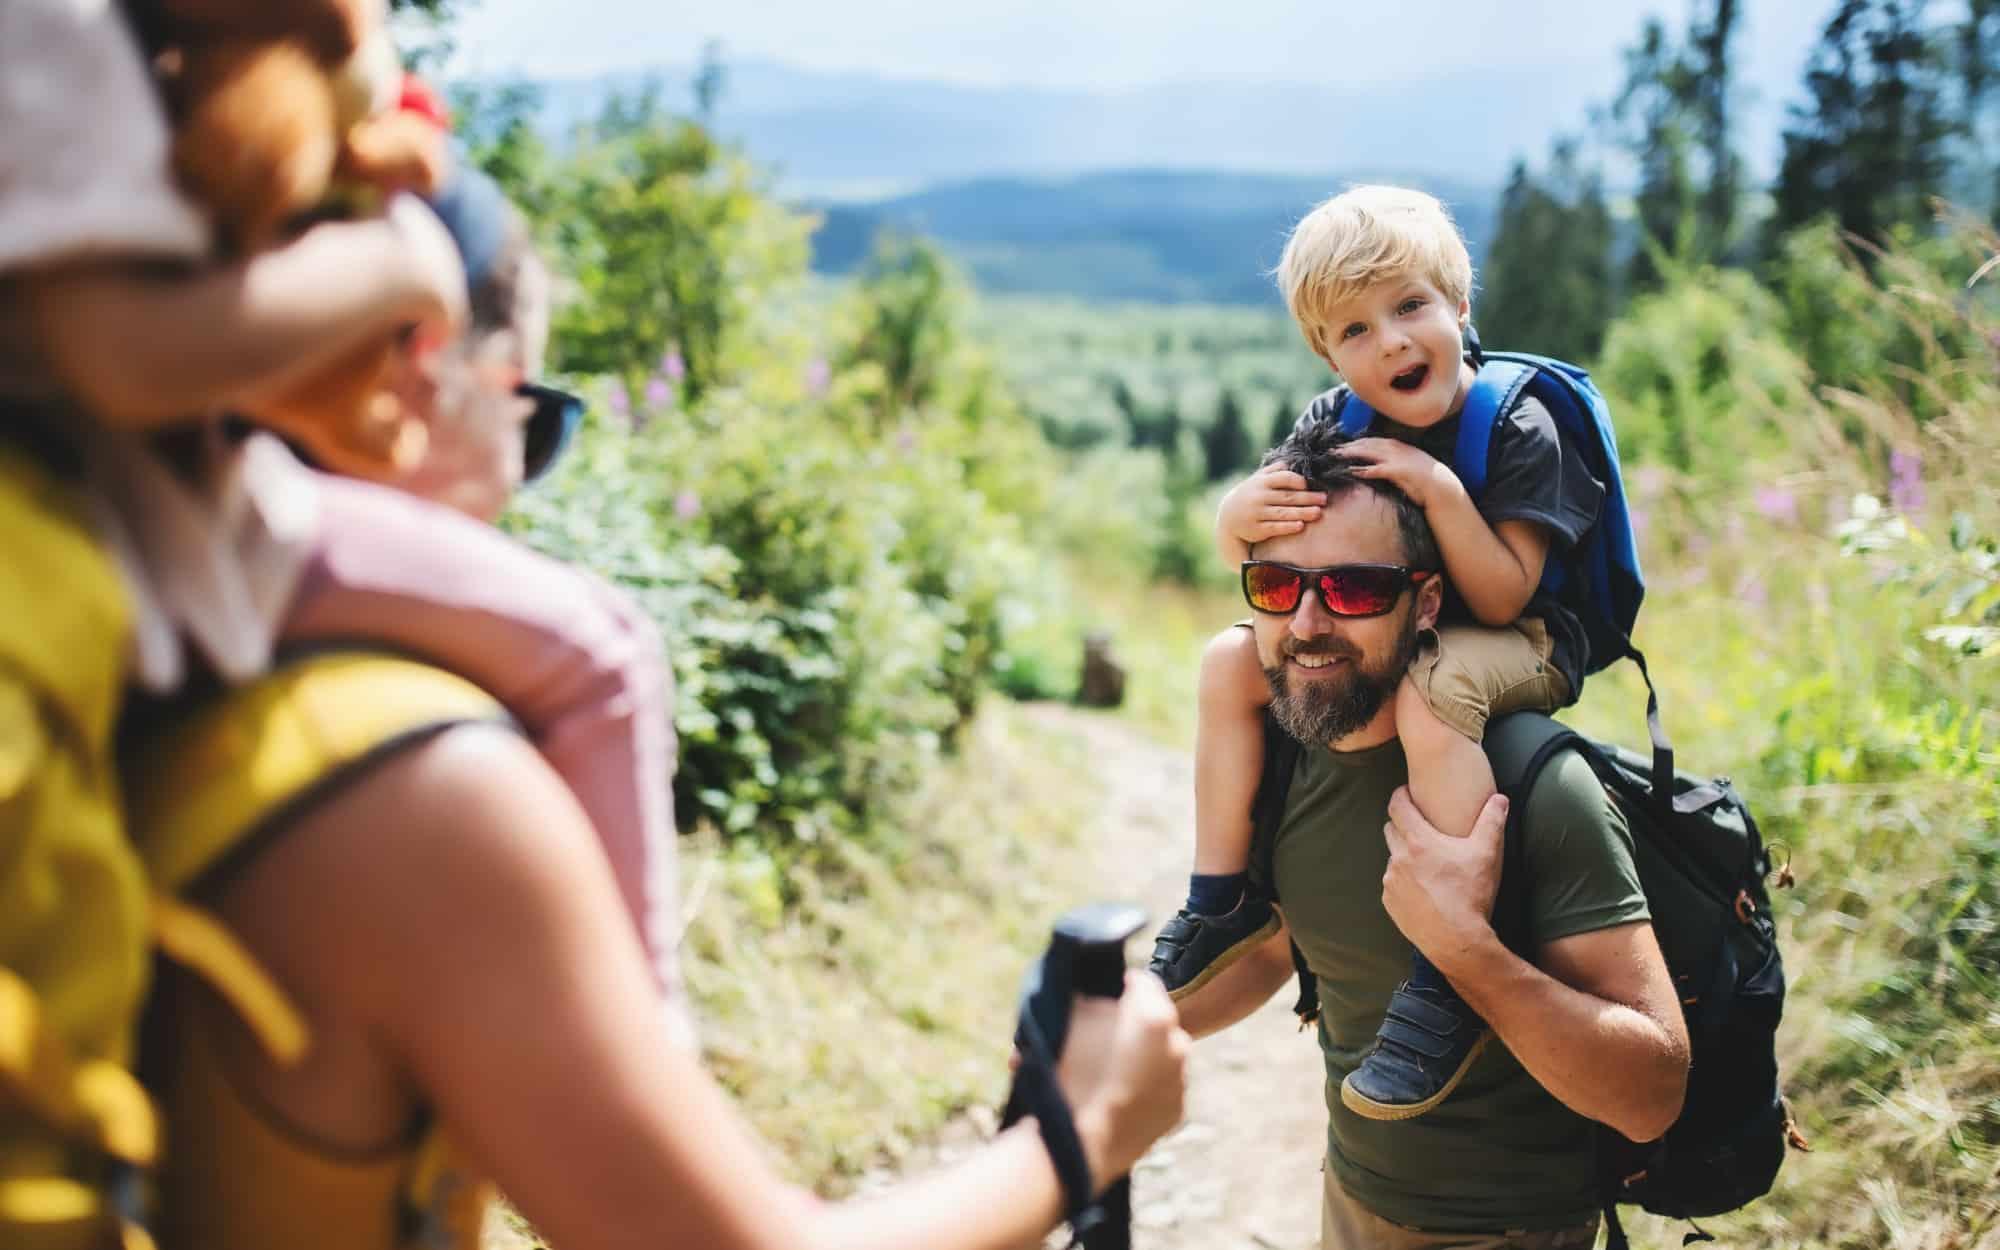 Family with small children hiking outdoors in summer nature